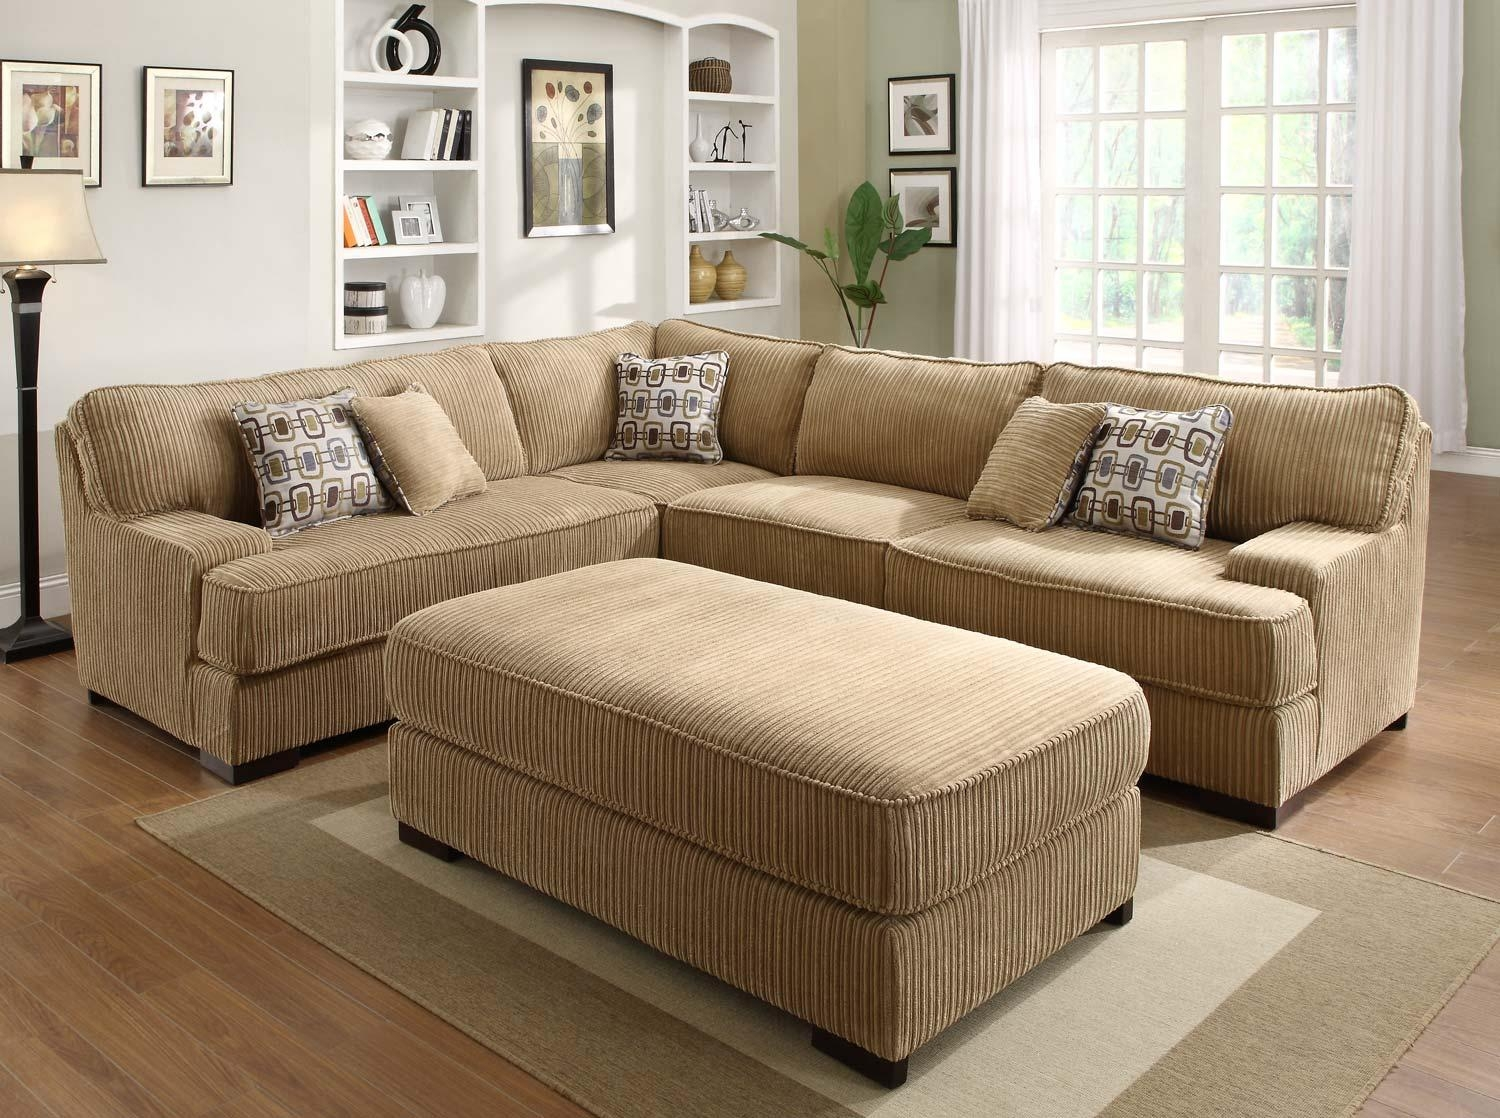 Simmons Sectional Sofas – S3Net – Sectional Sofas Sale : S3Net Within Cloth Sectional Sofas (View 15 of 21)